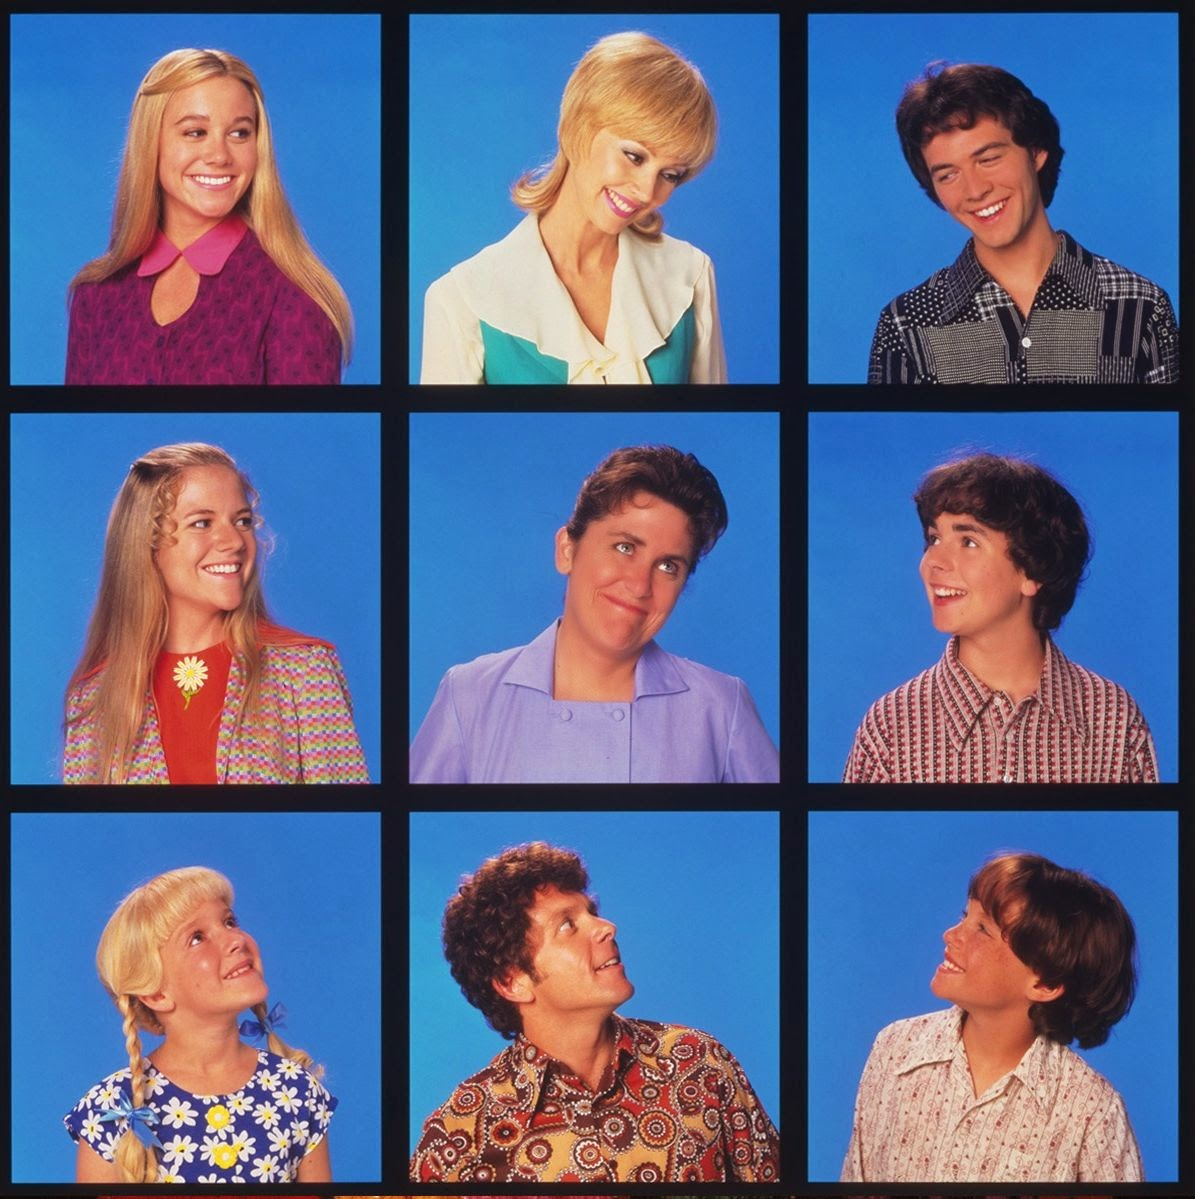 The_Brady_Bunch_Movie_wallpapers_21528.jpg